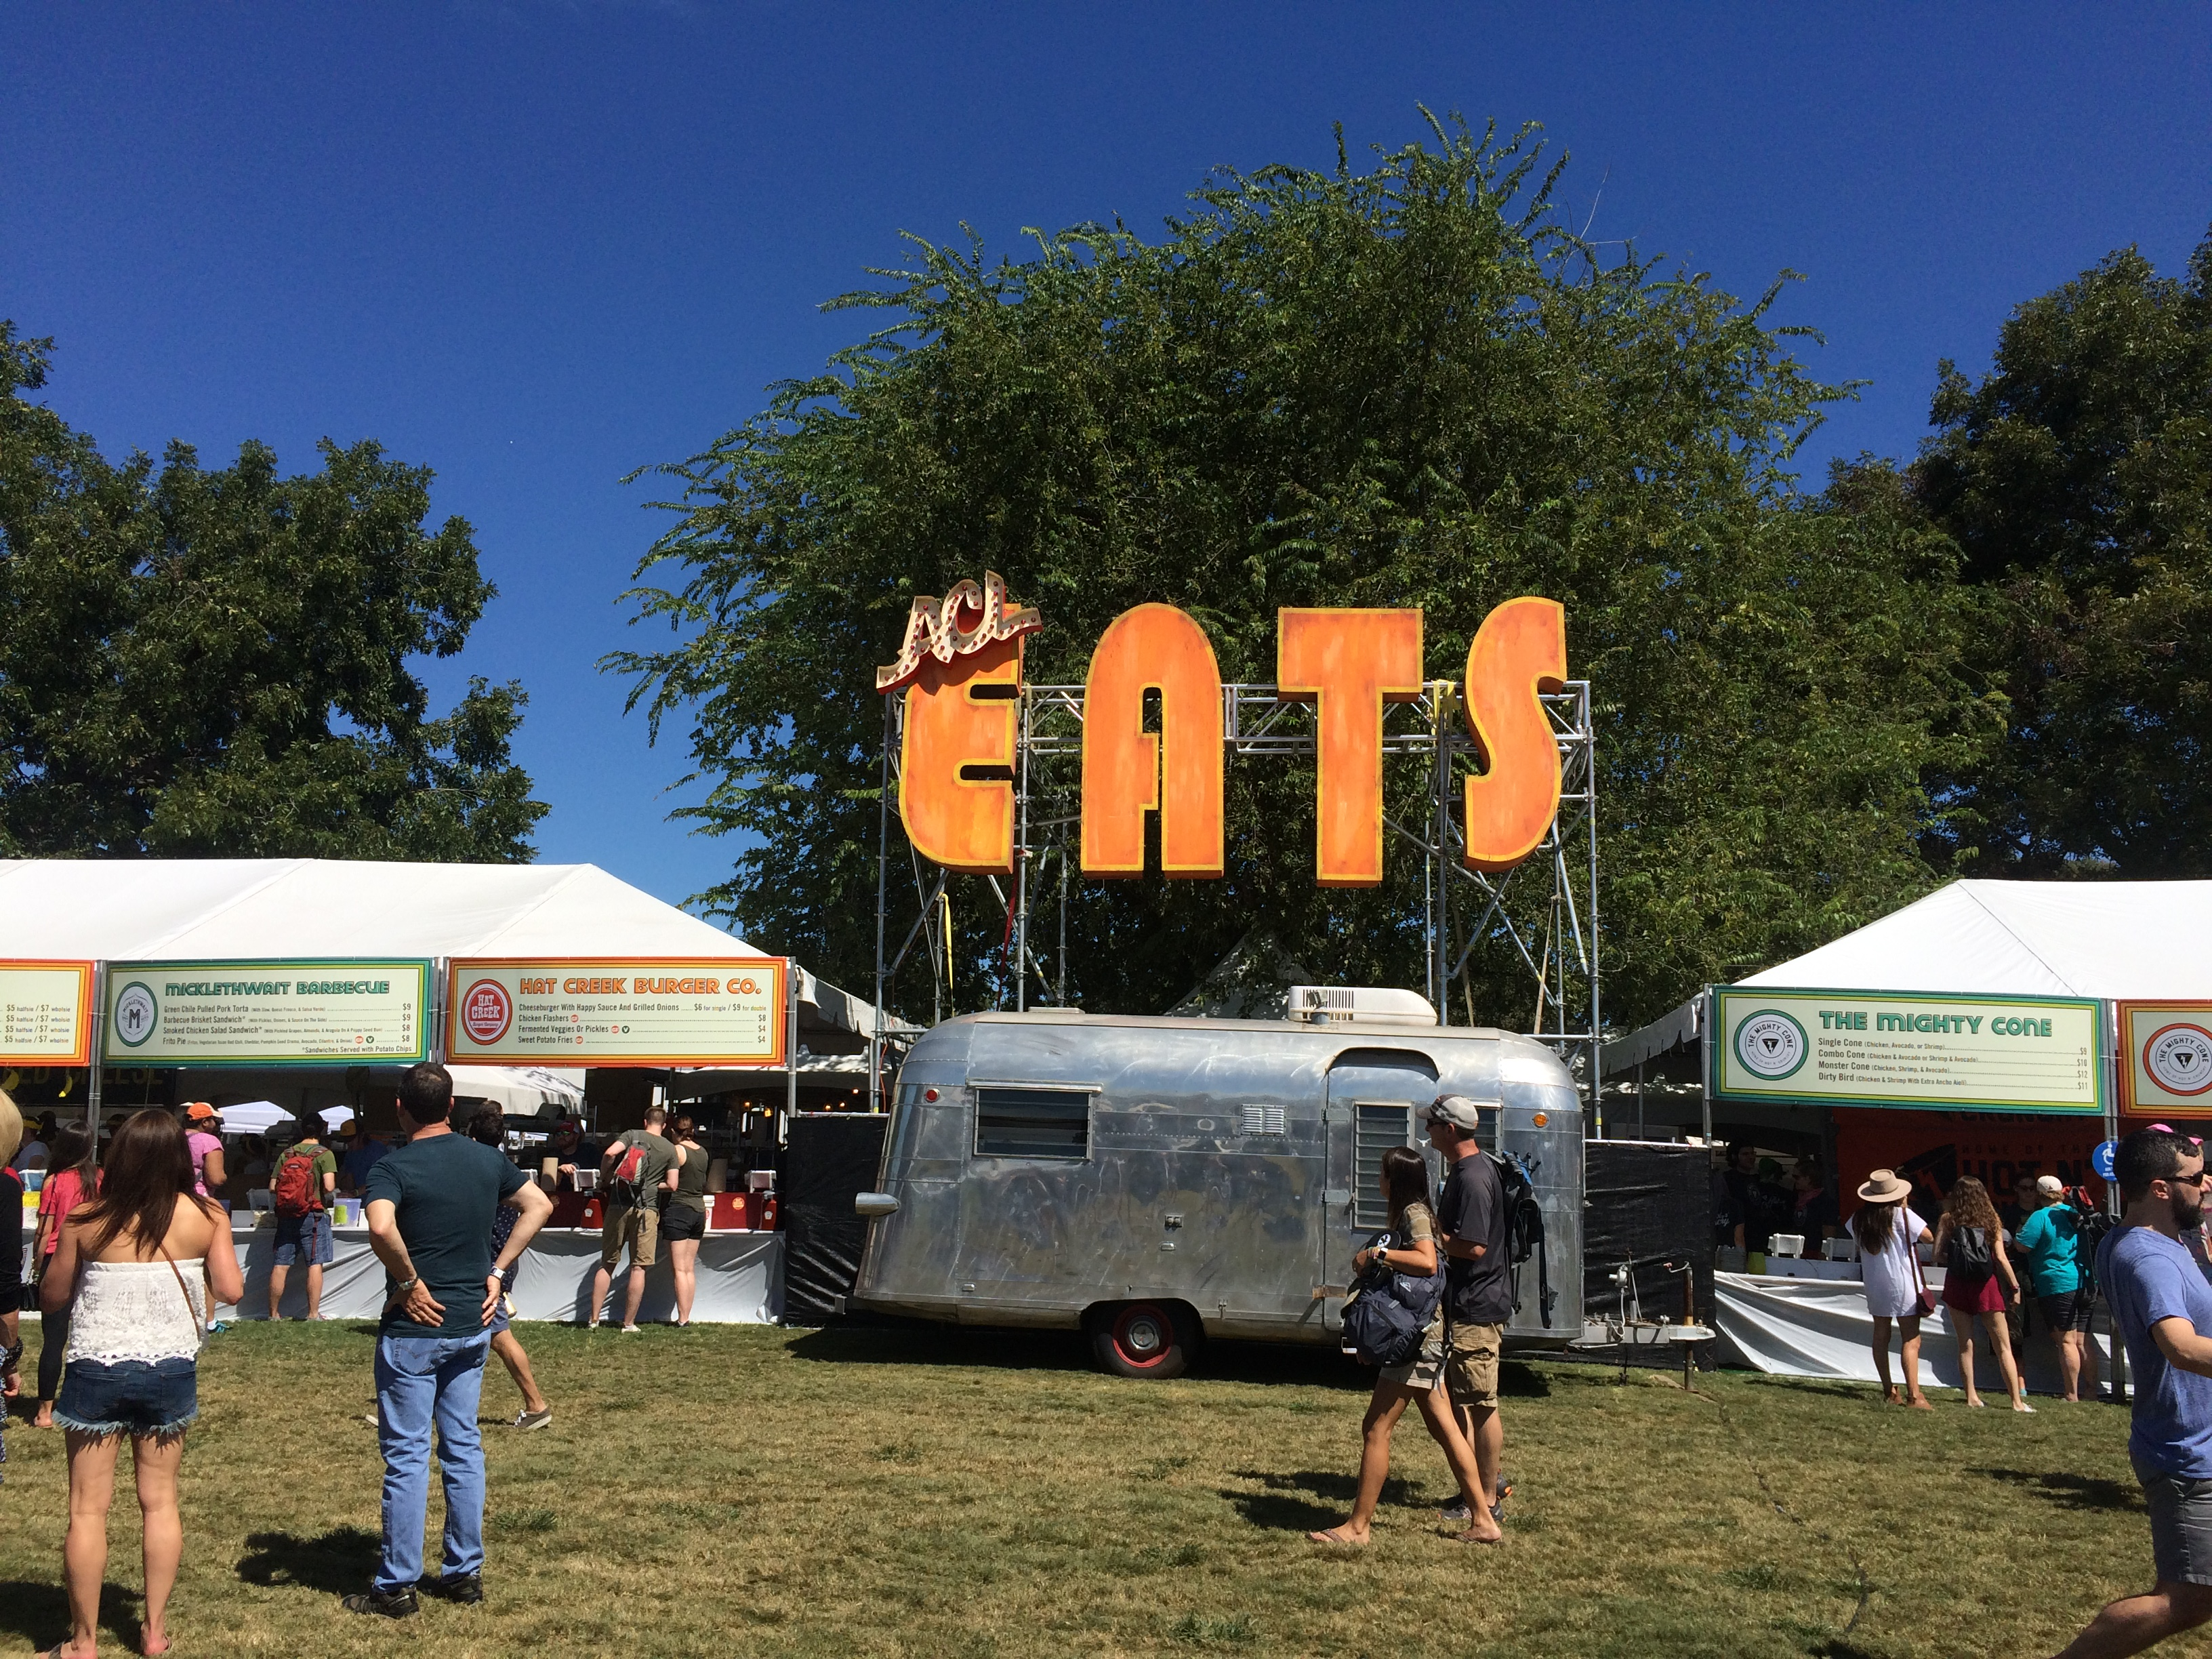 ACL Eats at ACL